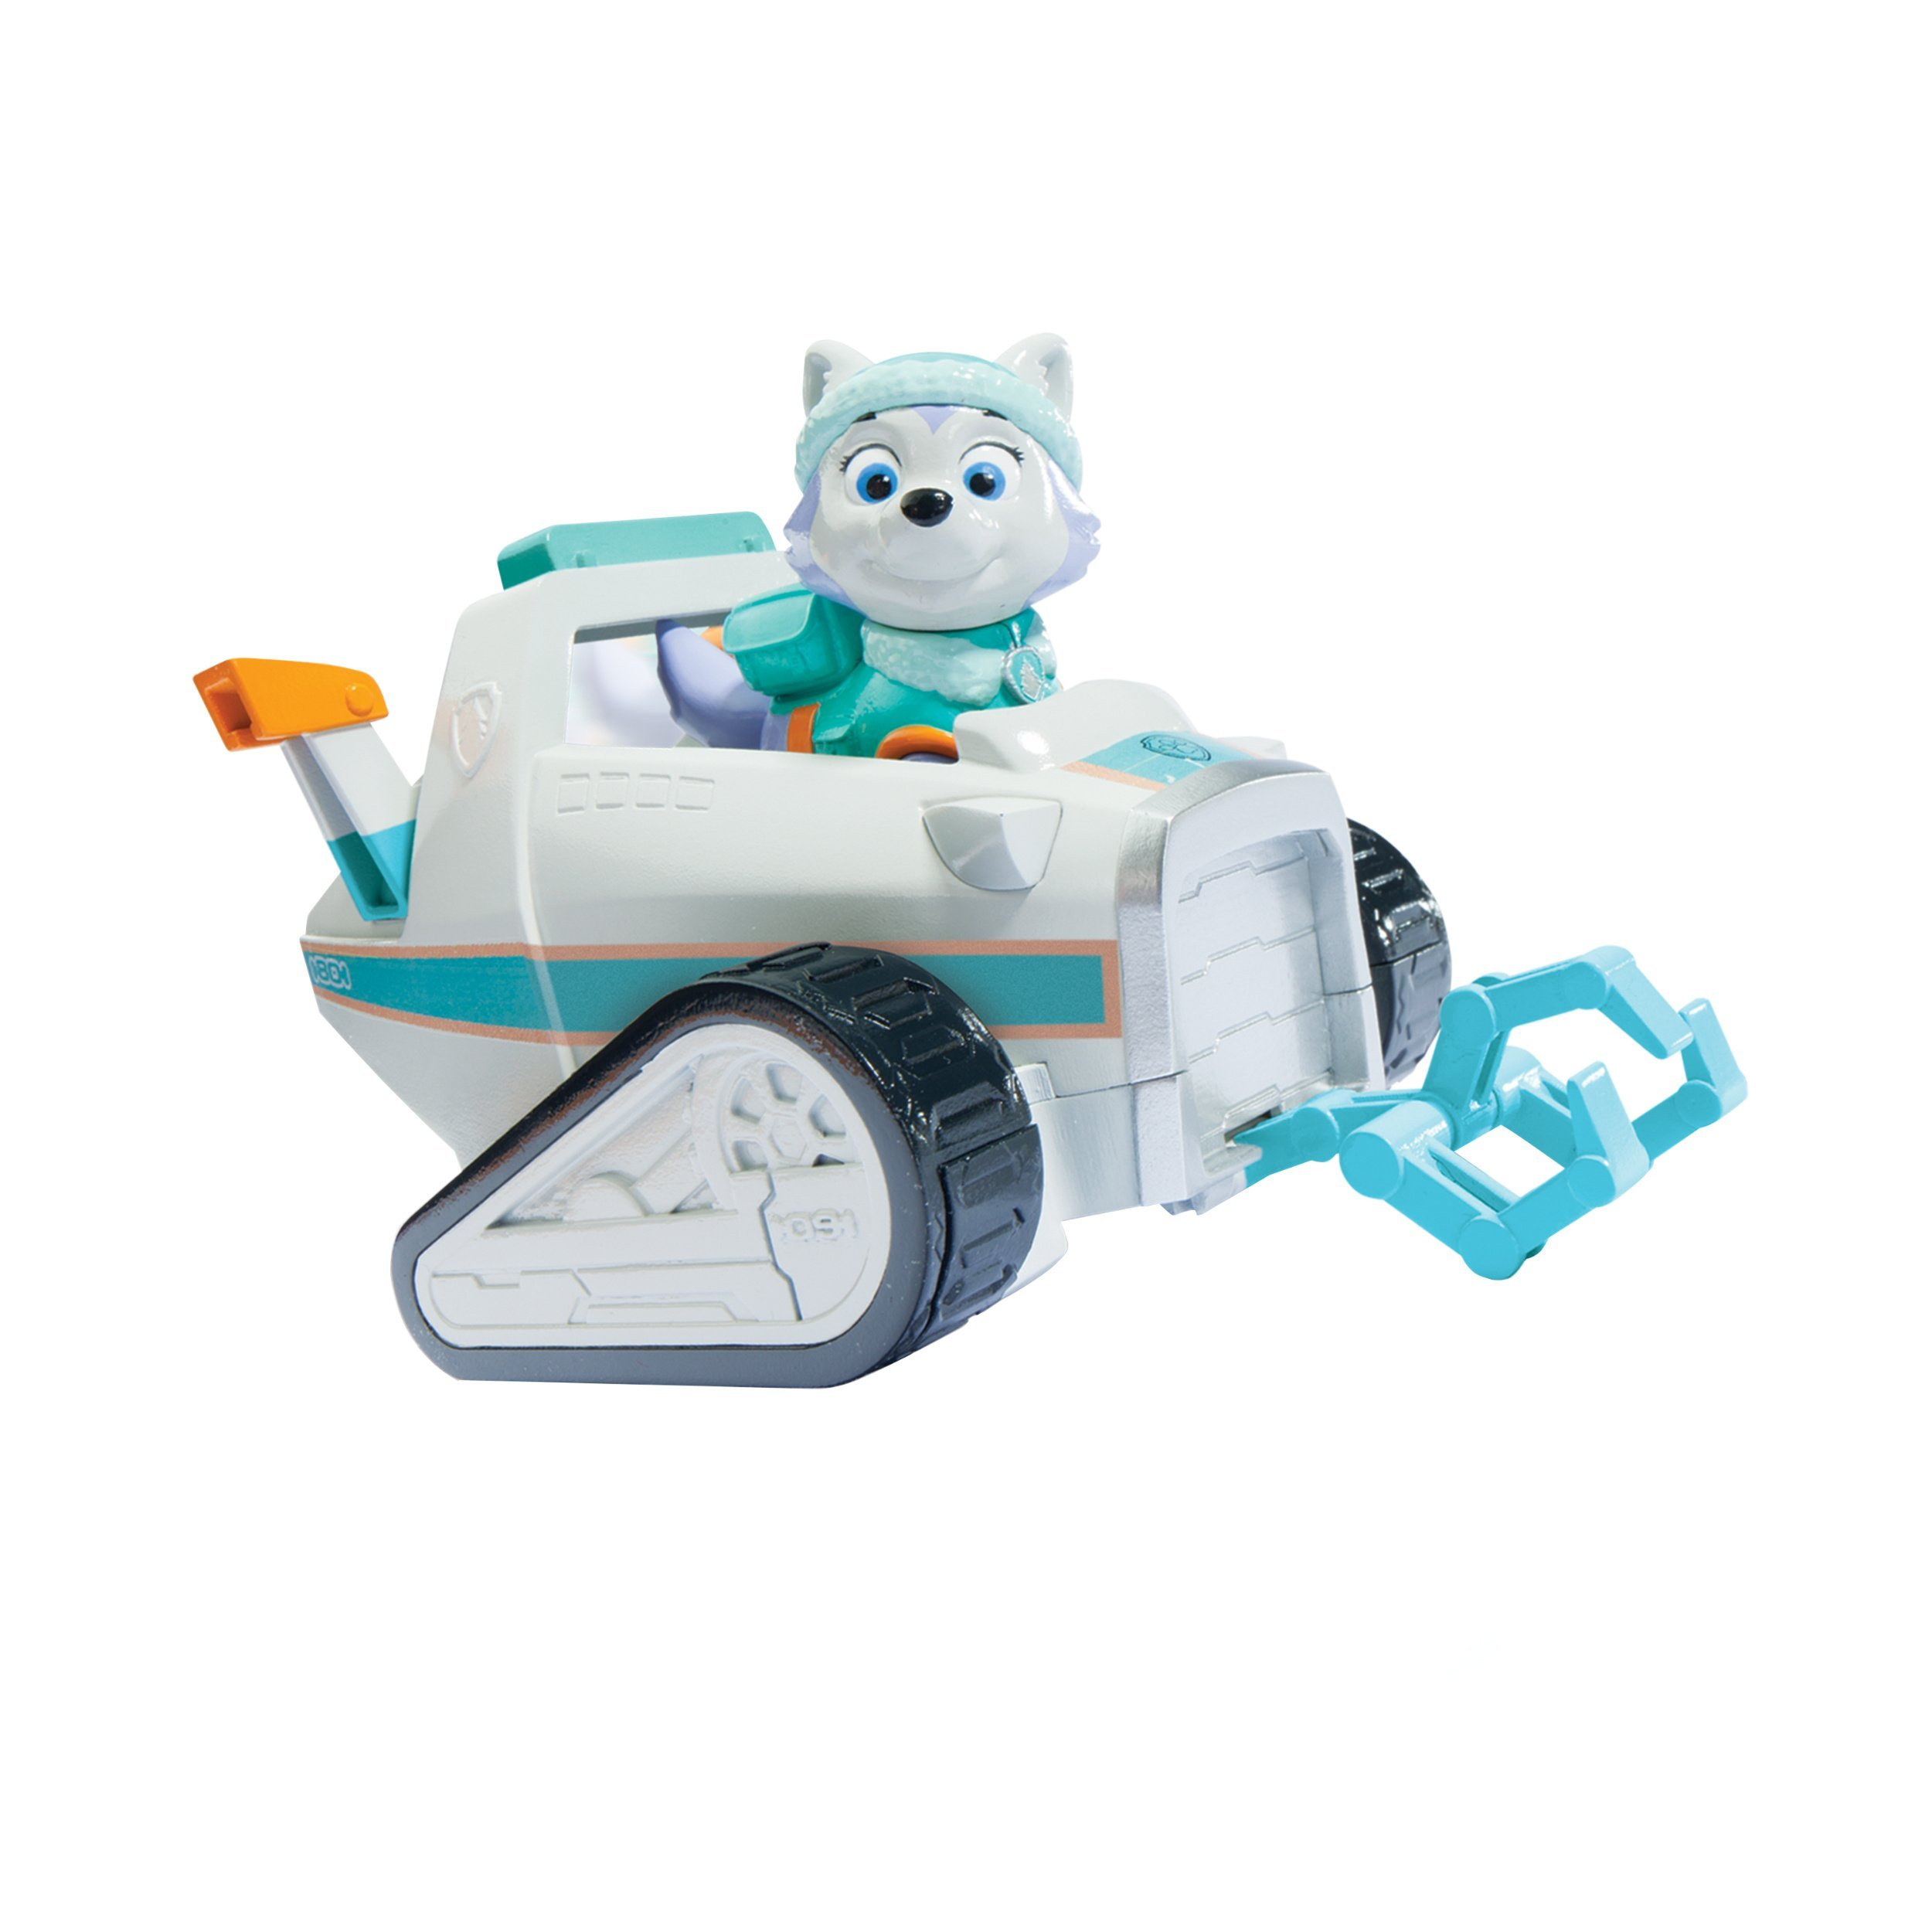 PAW PATROL Everest's Rescue Snowmobile, 6026601